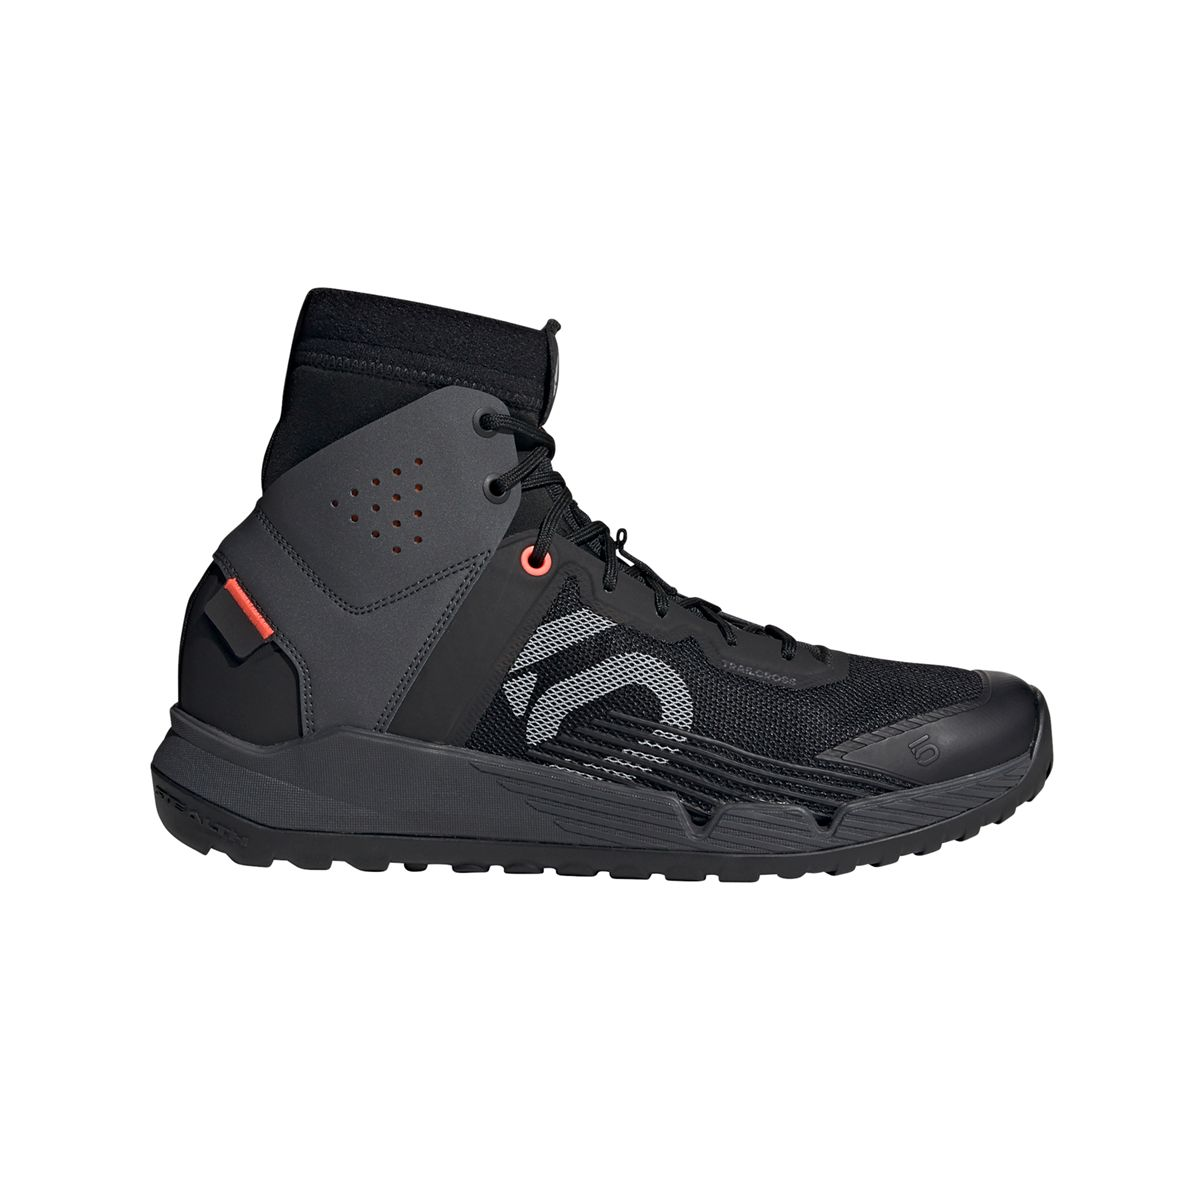 5.10 TRAILCROSS MID PRO Shoes